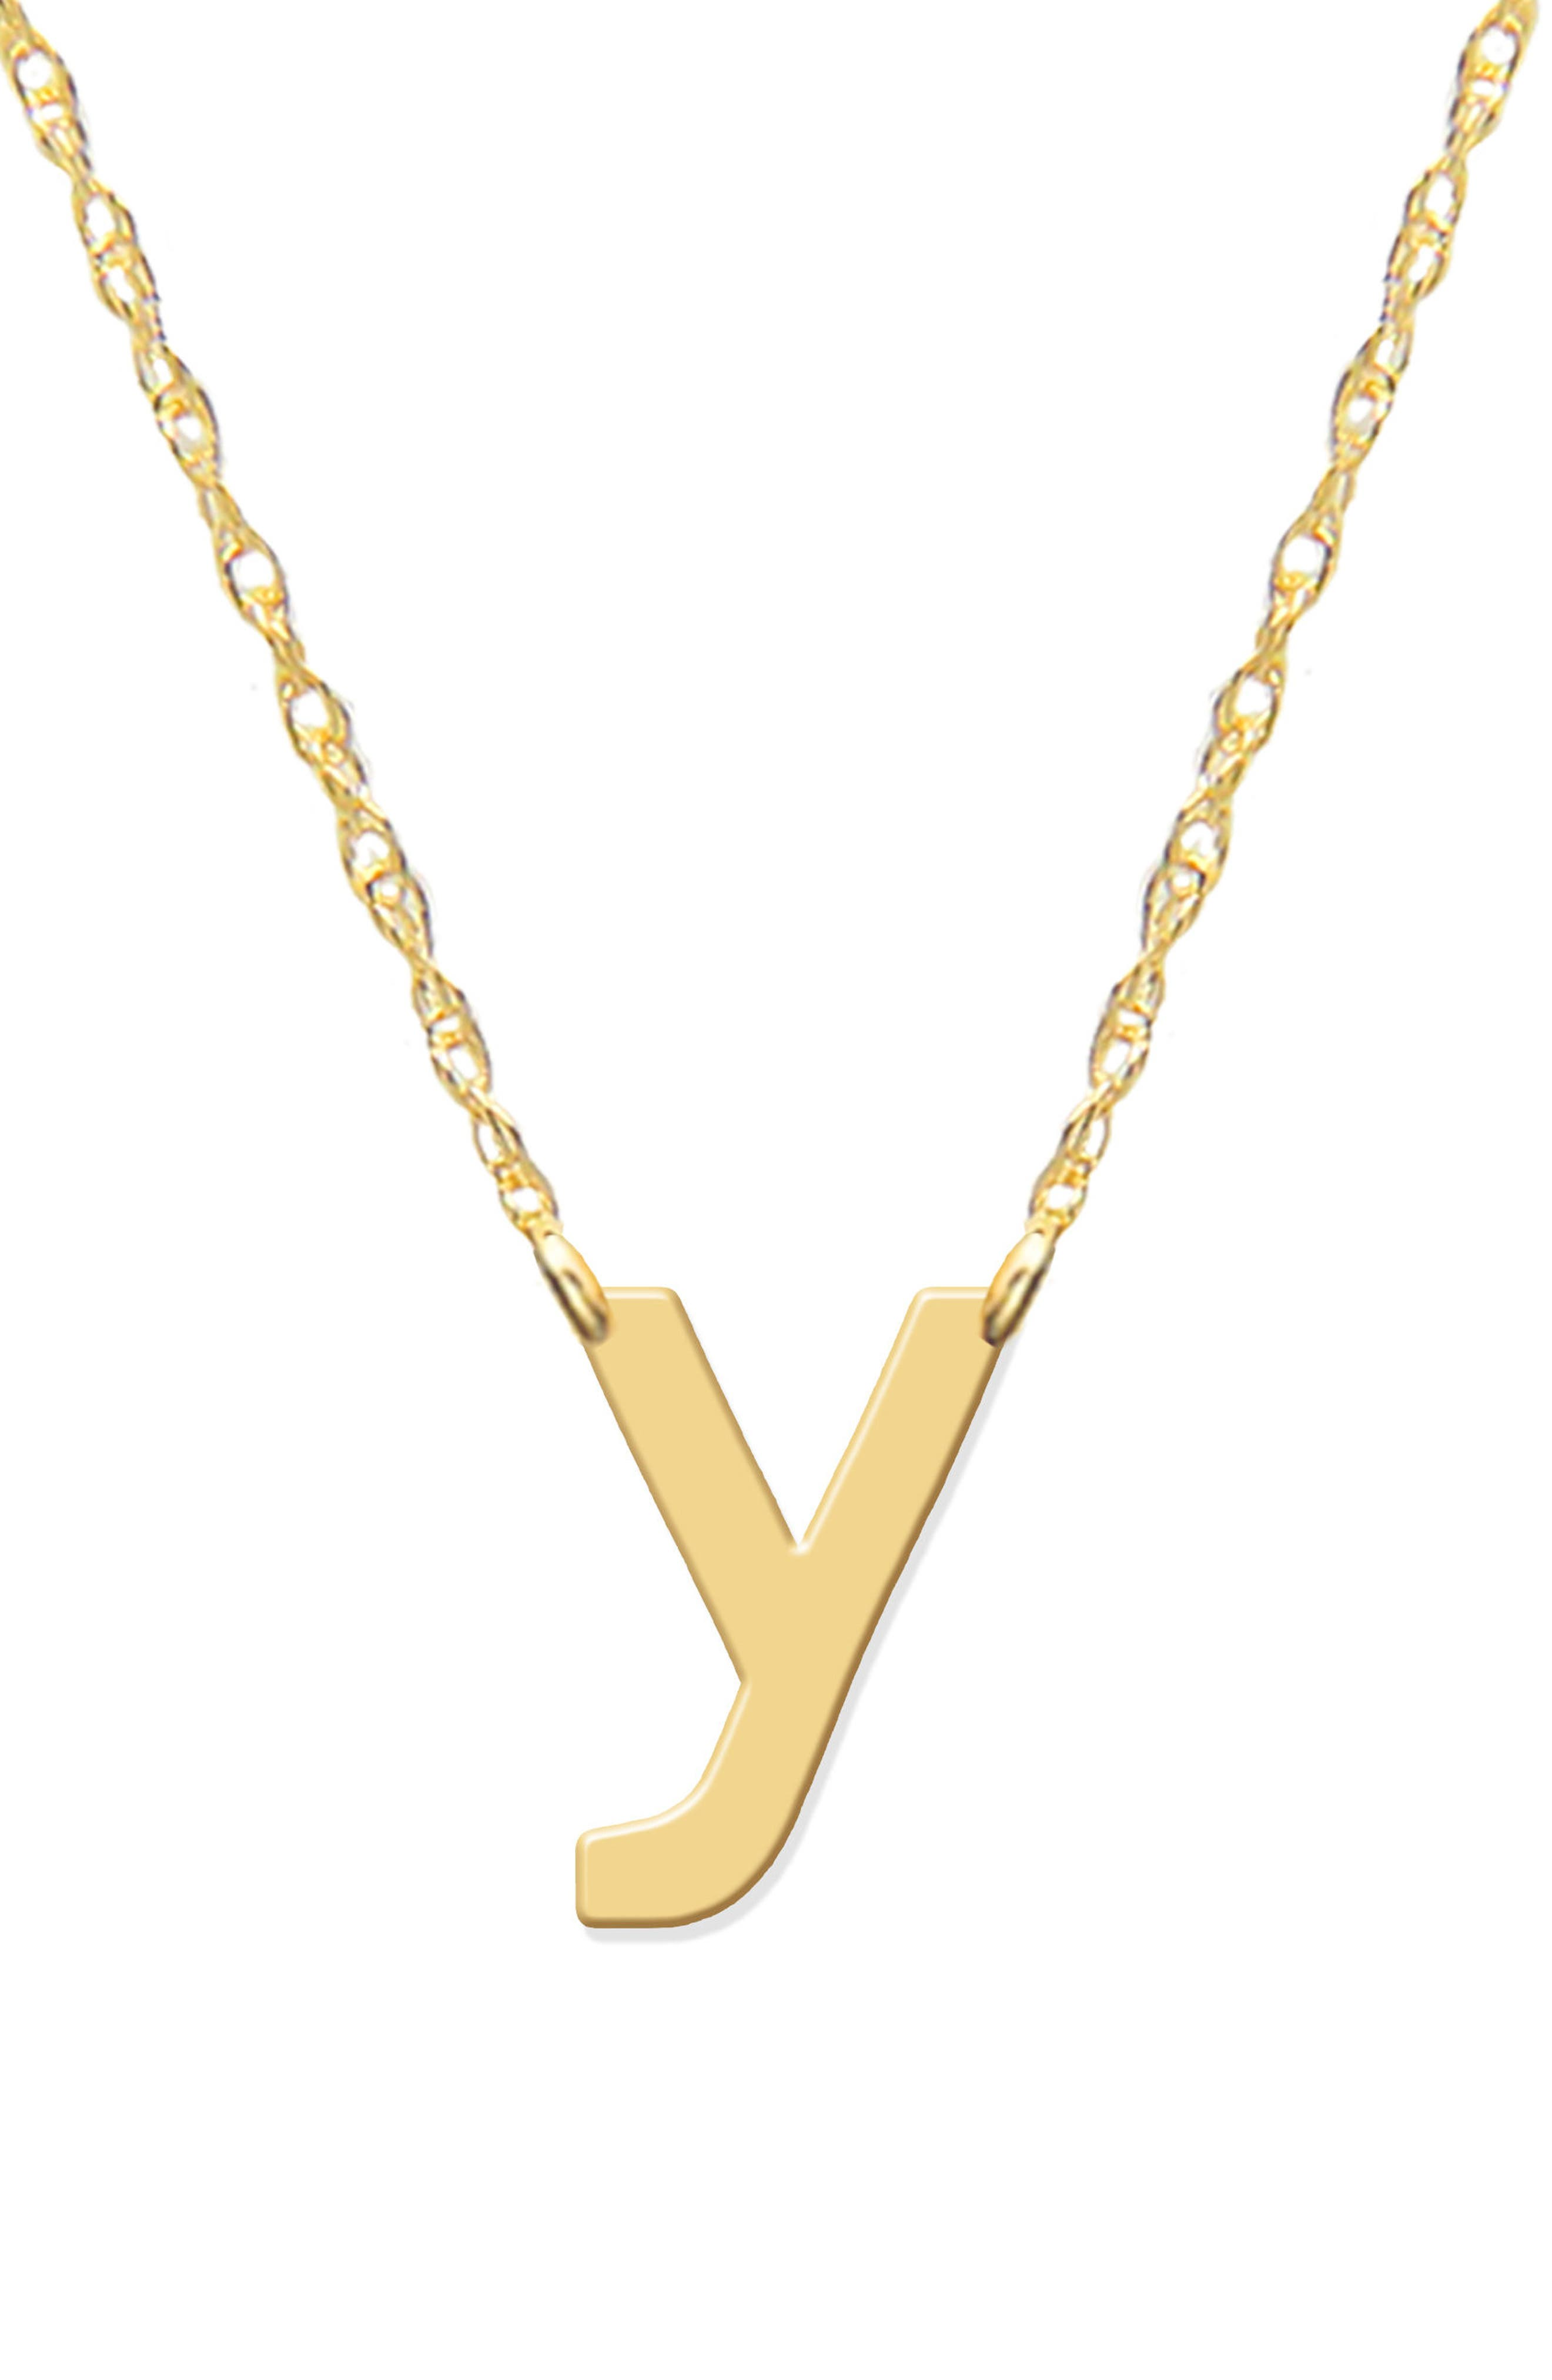 Lowercase Initial Pendant Necklace,                             Main thumbnail 1, color,                             Gold- Y